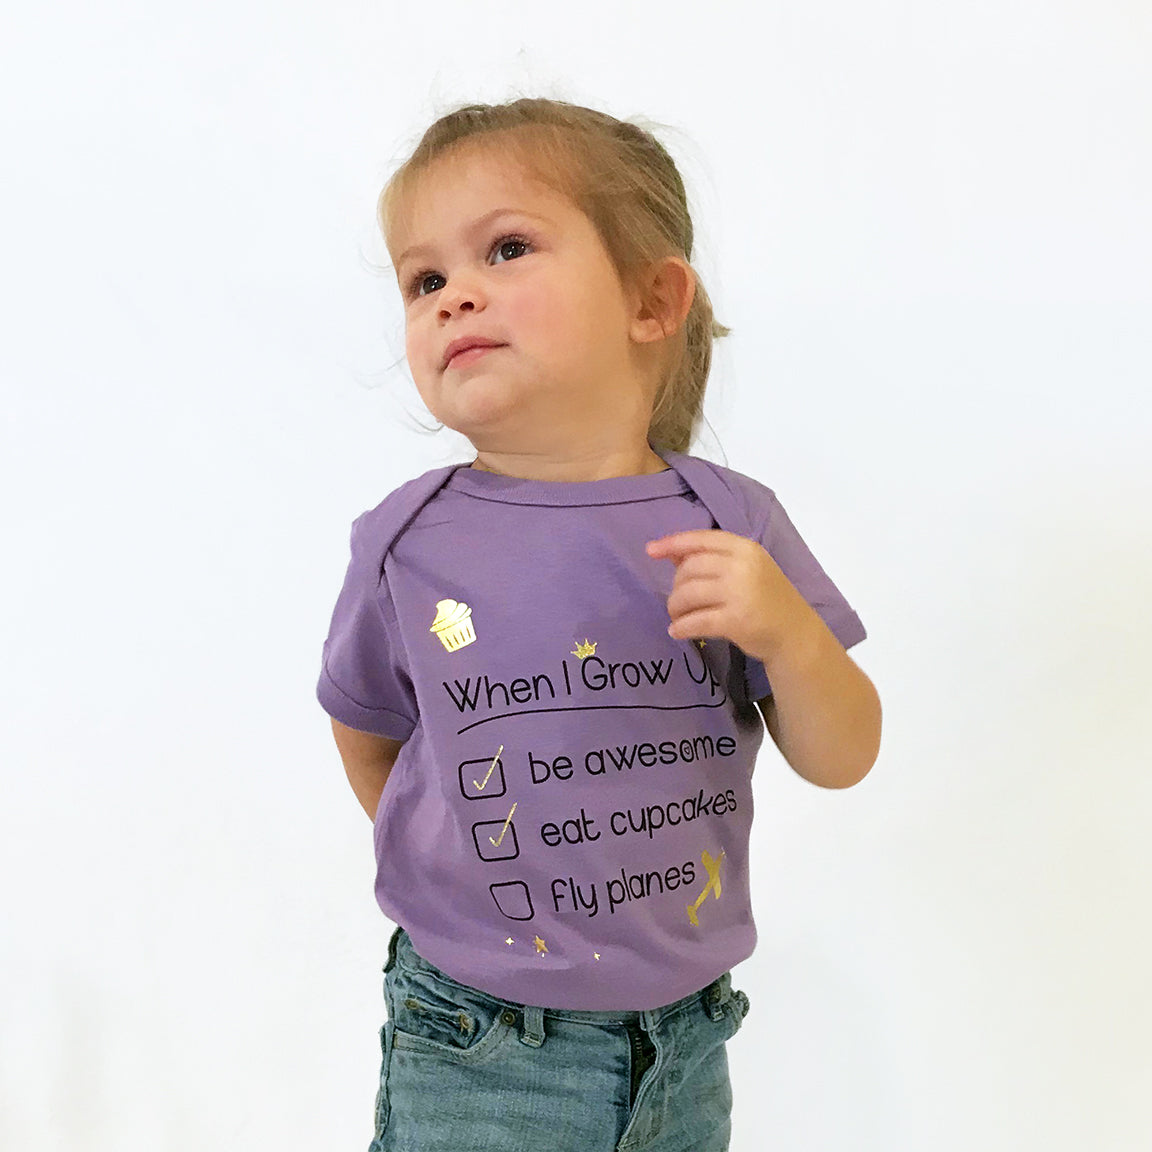 One Plane Jane bucket list When I Grow Up Infant Onesie T-shirt. Shown in purple with black writing and gold accents including an airplane. Already checked, Be Awesome & Eat Cupcakes. WAiting to check, Fly Planes.